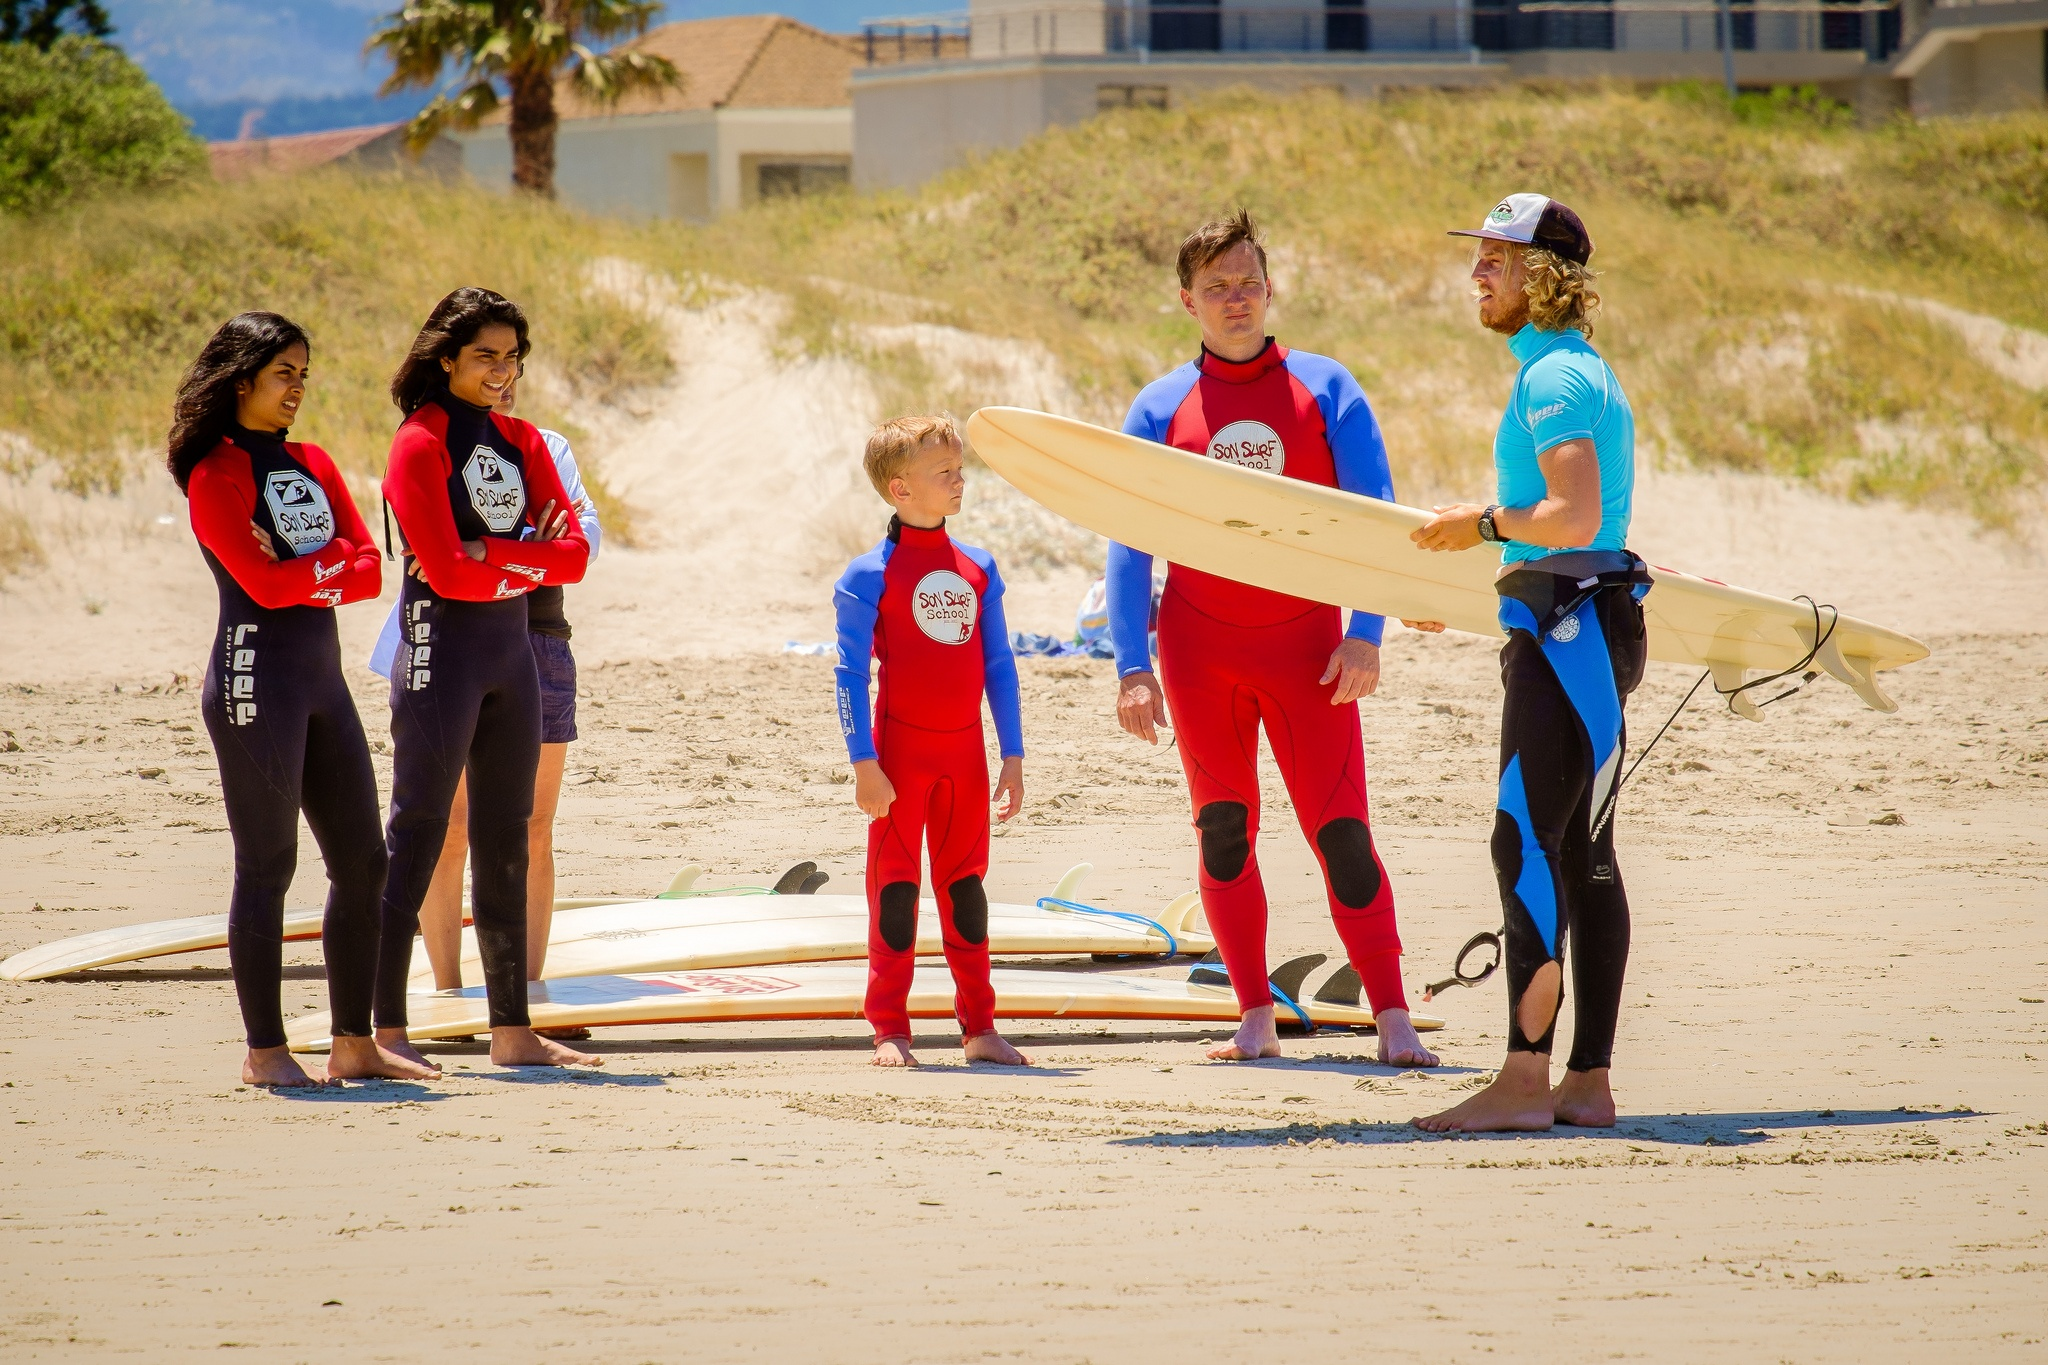 Instructor escuela de surf y clientes